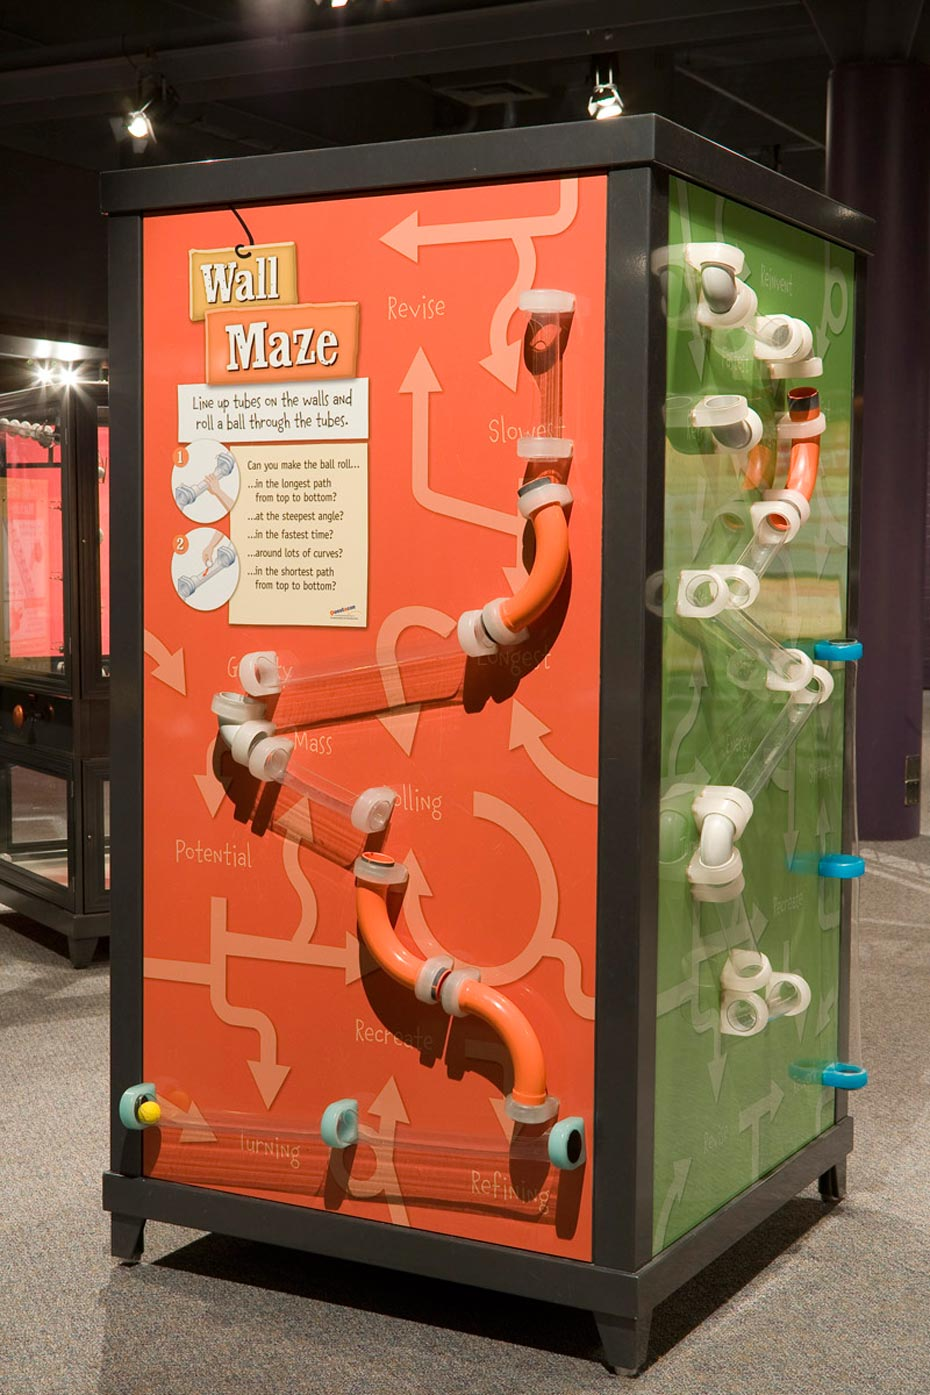 Wall Maze | Questacon - The National Science and Technology Centre